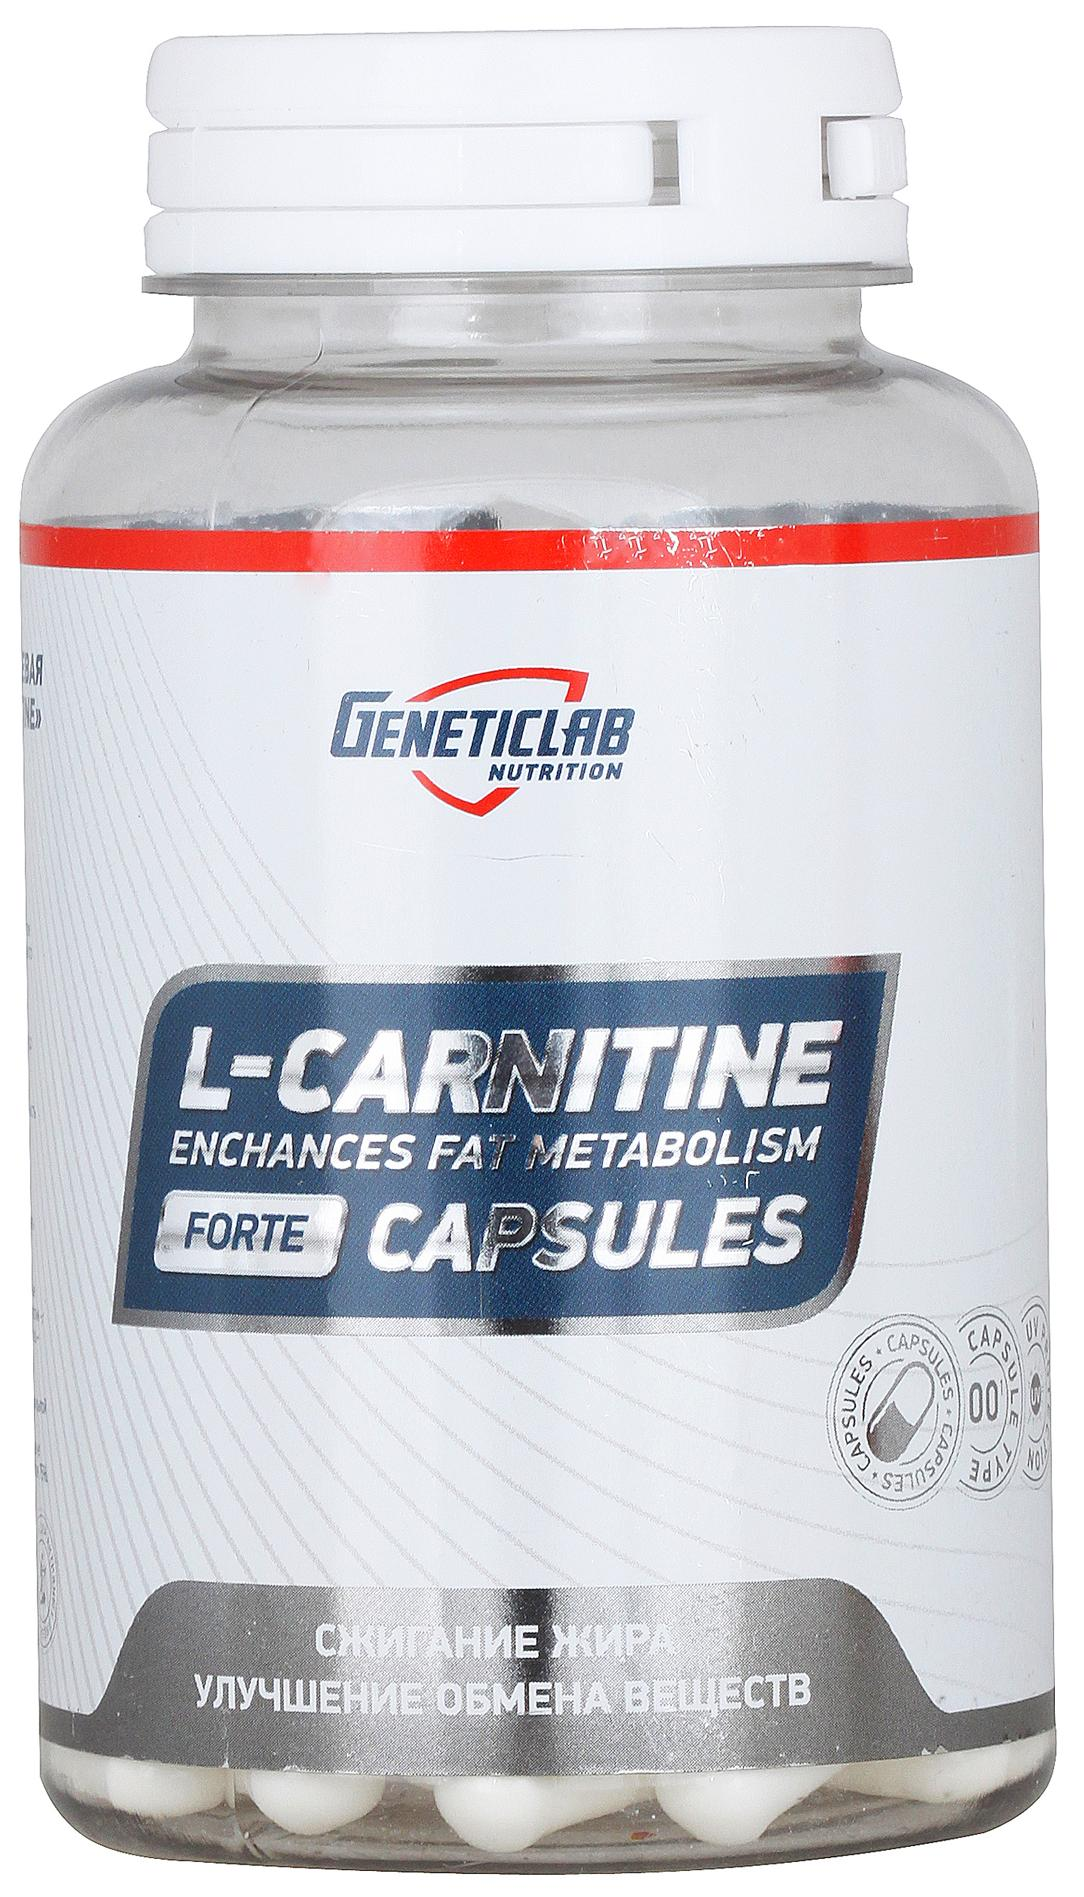 L-Carnitin capsules, 60 капсул, Geneticlab